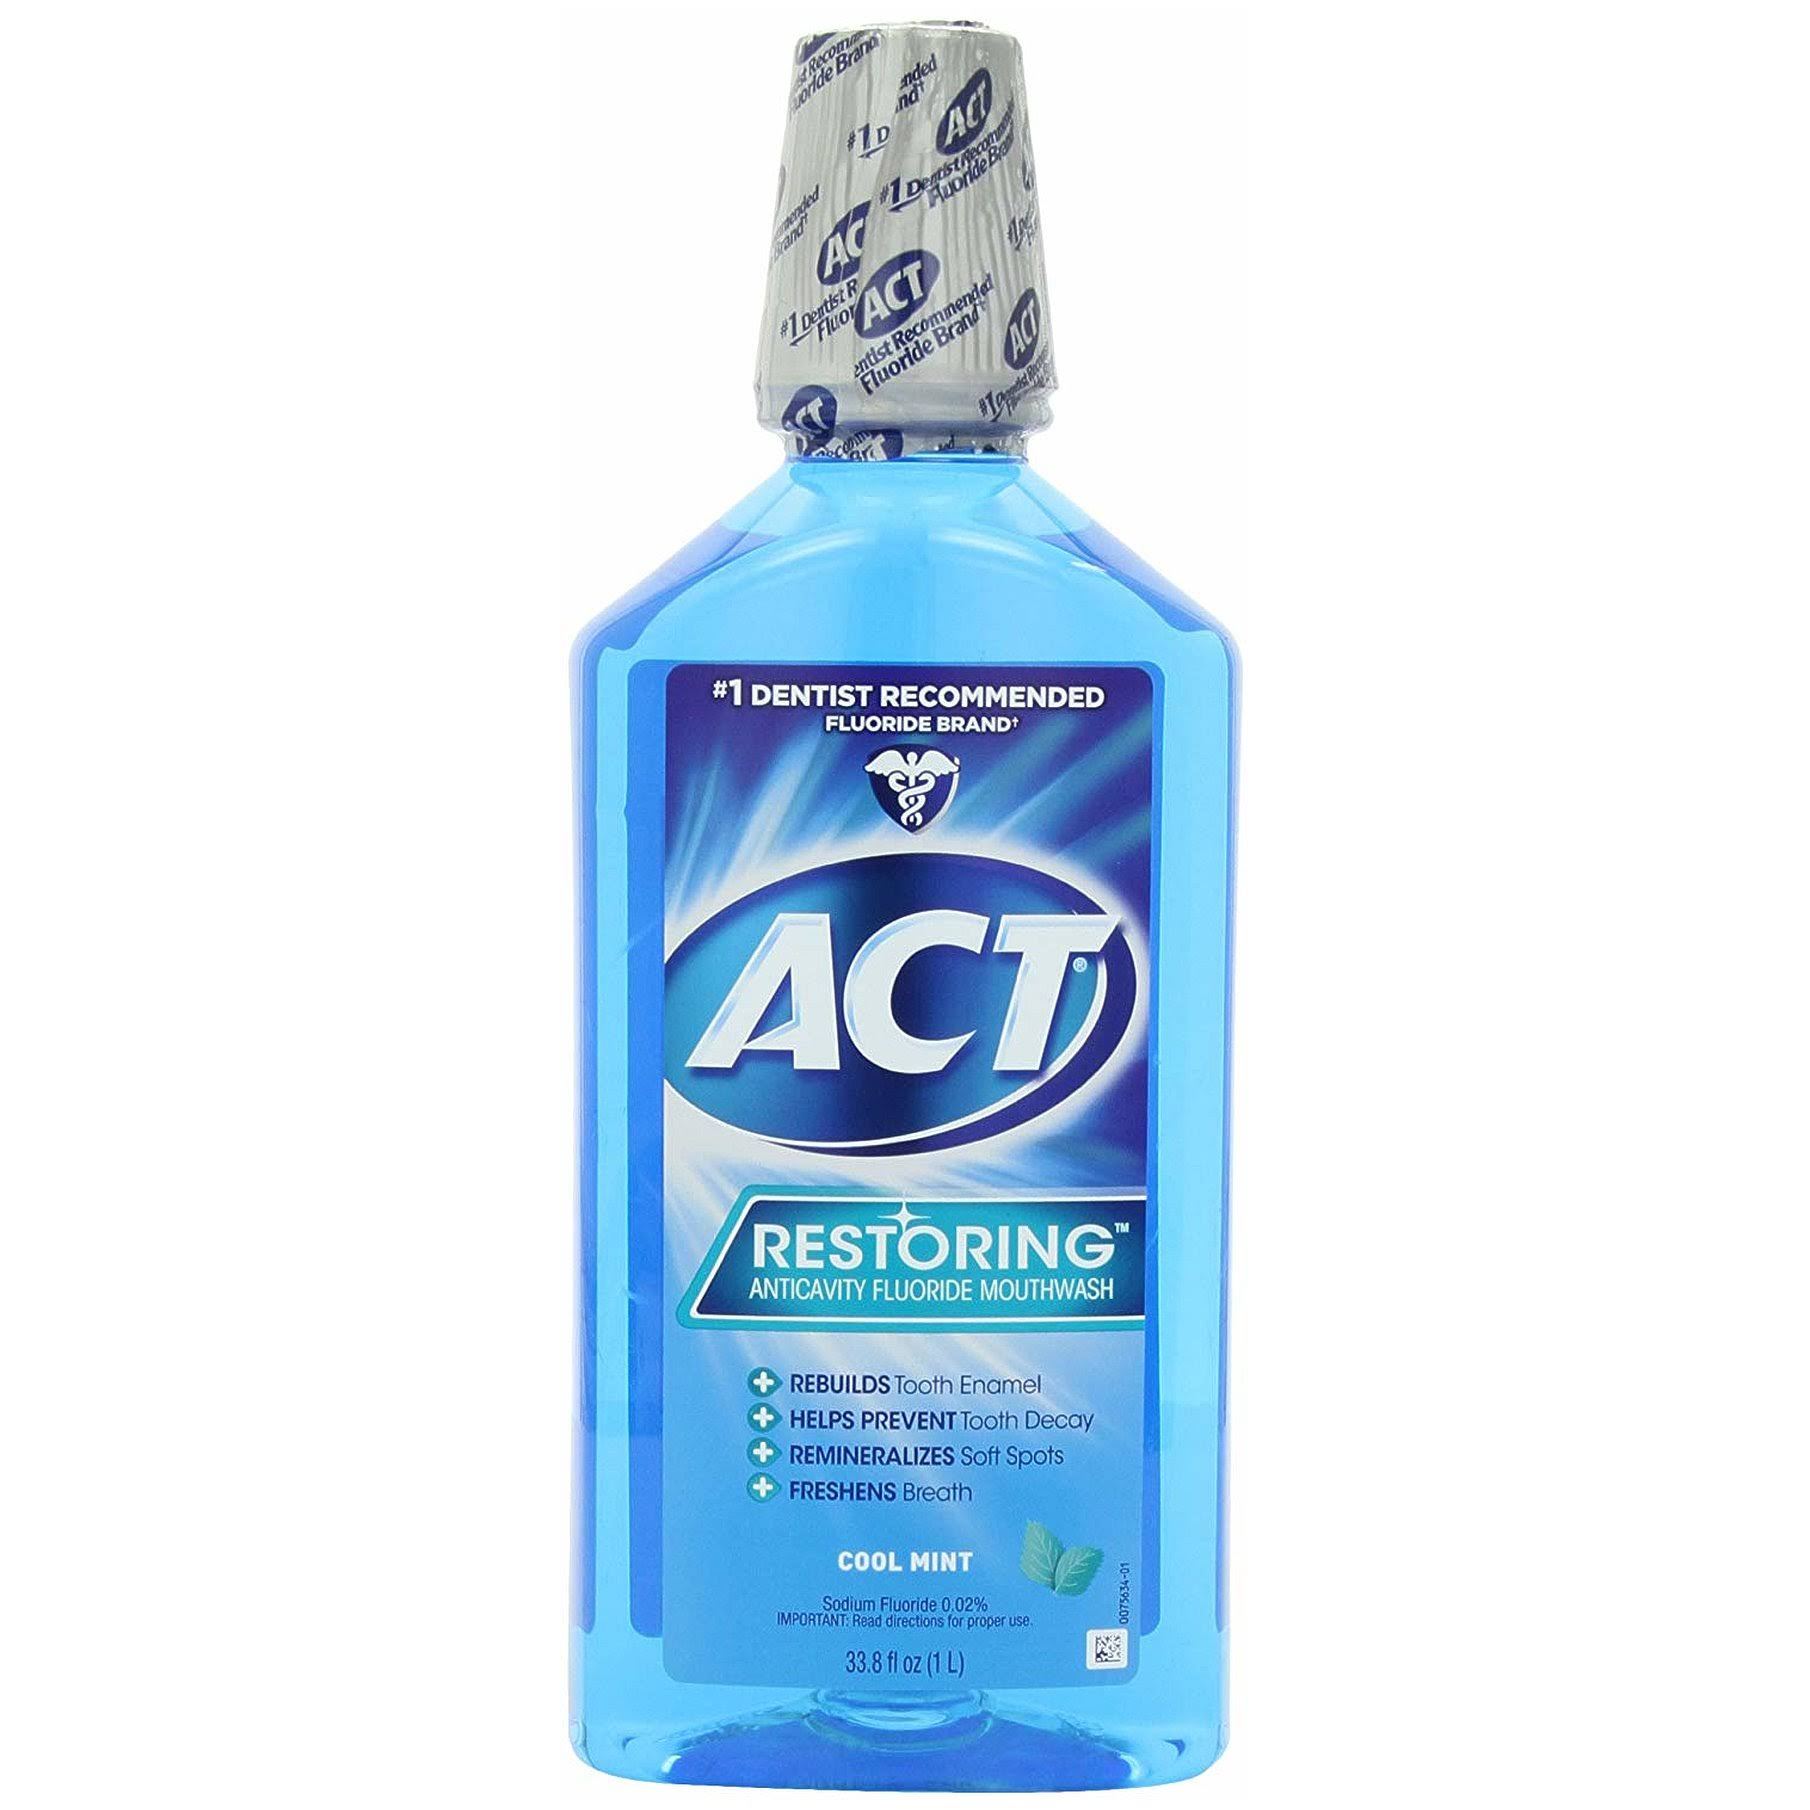 Act Restoring Anticavity Fluoride Mouthwash - Cool Mint